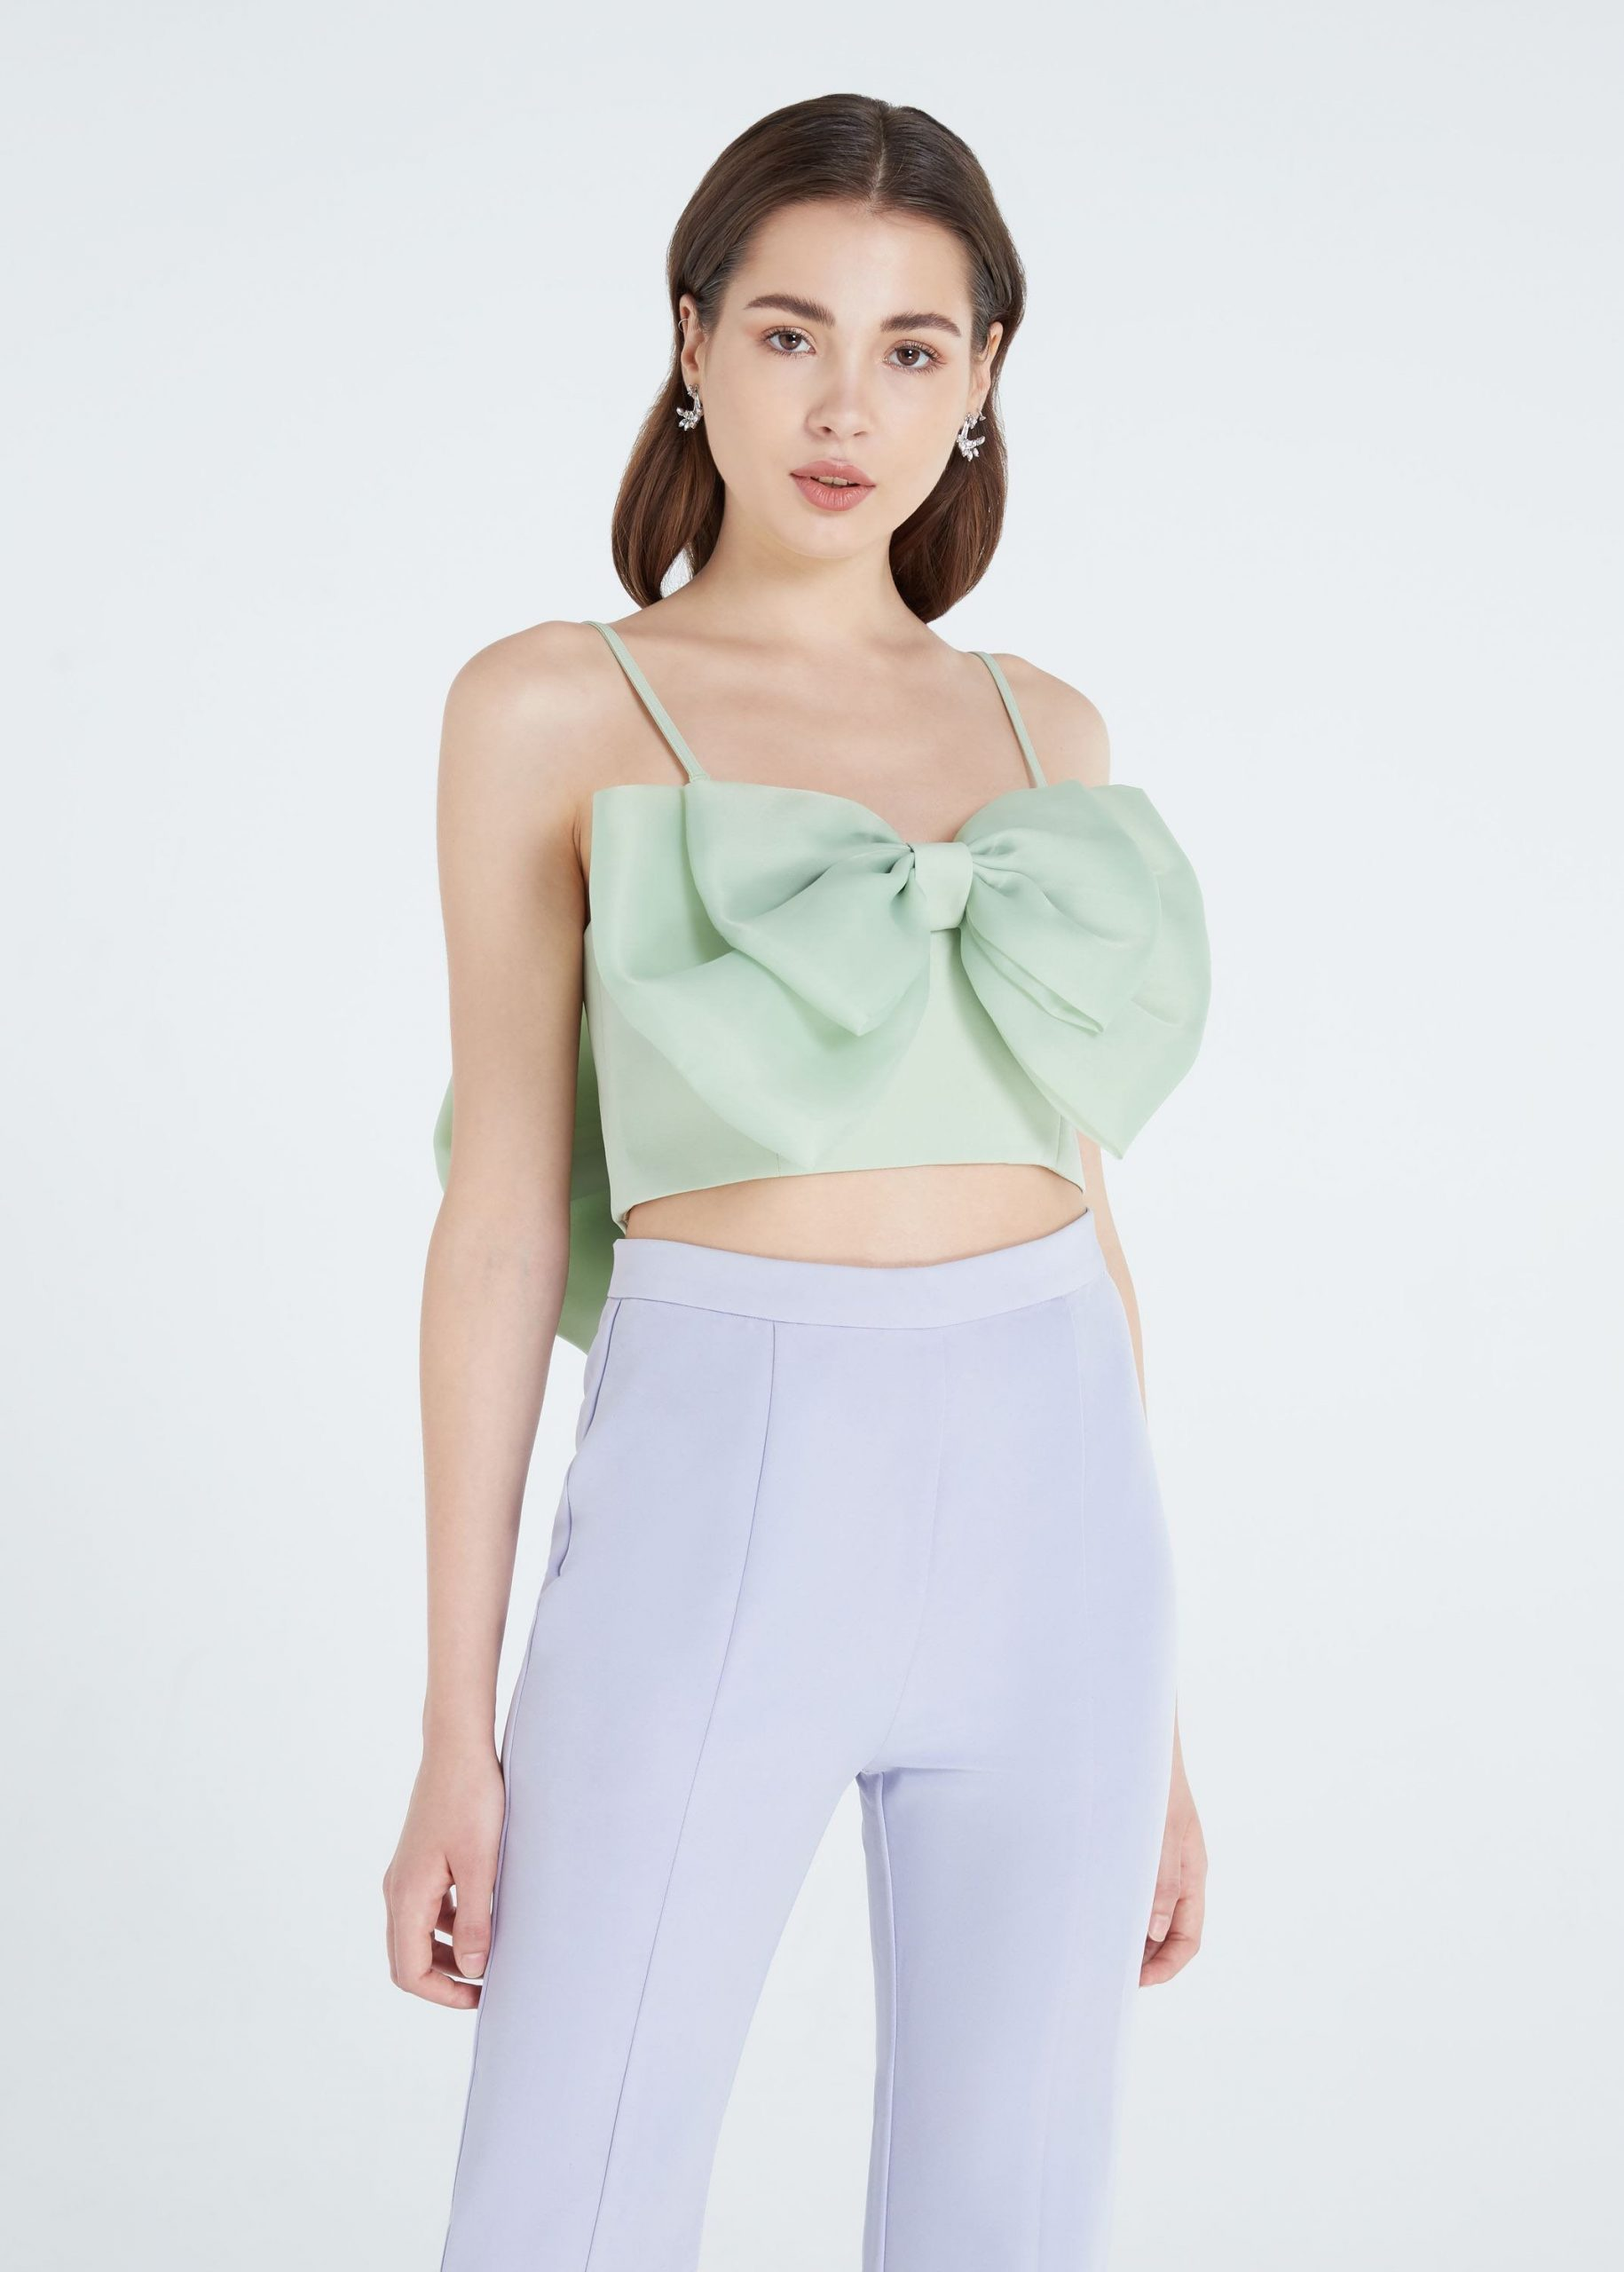 Crop tops came in fashion, largely due to fabric rationing